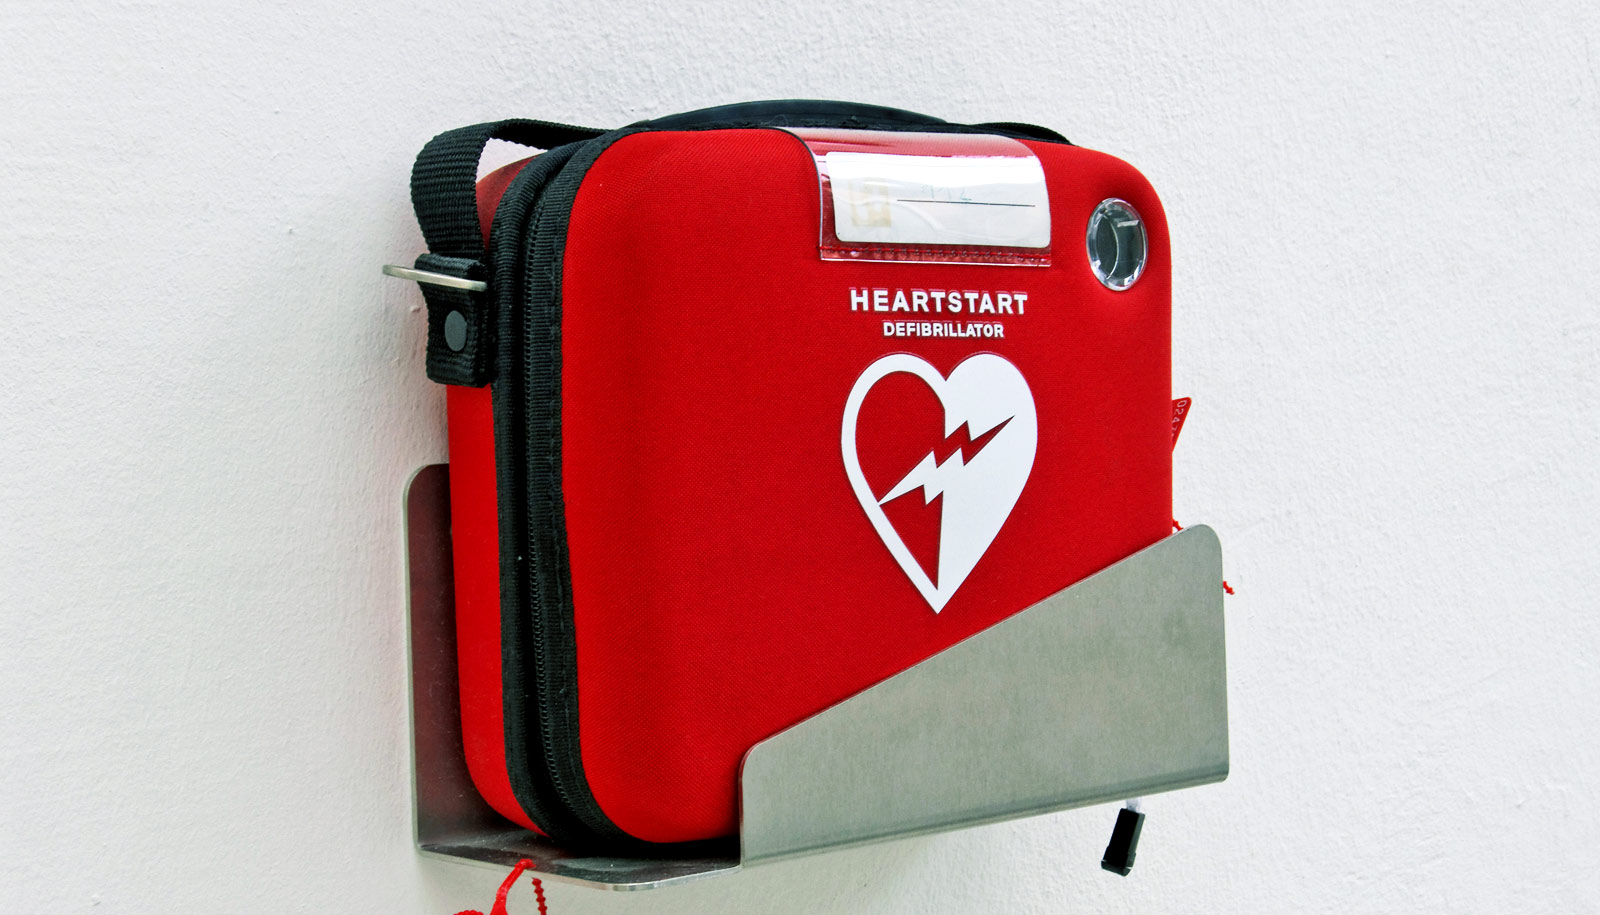 Why people shy away from using public defibrillators